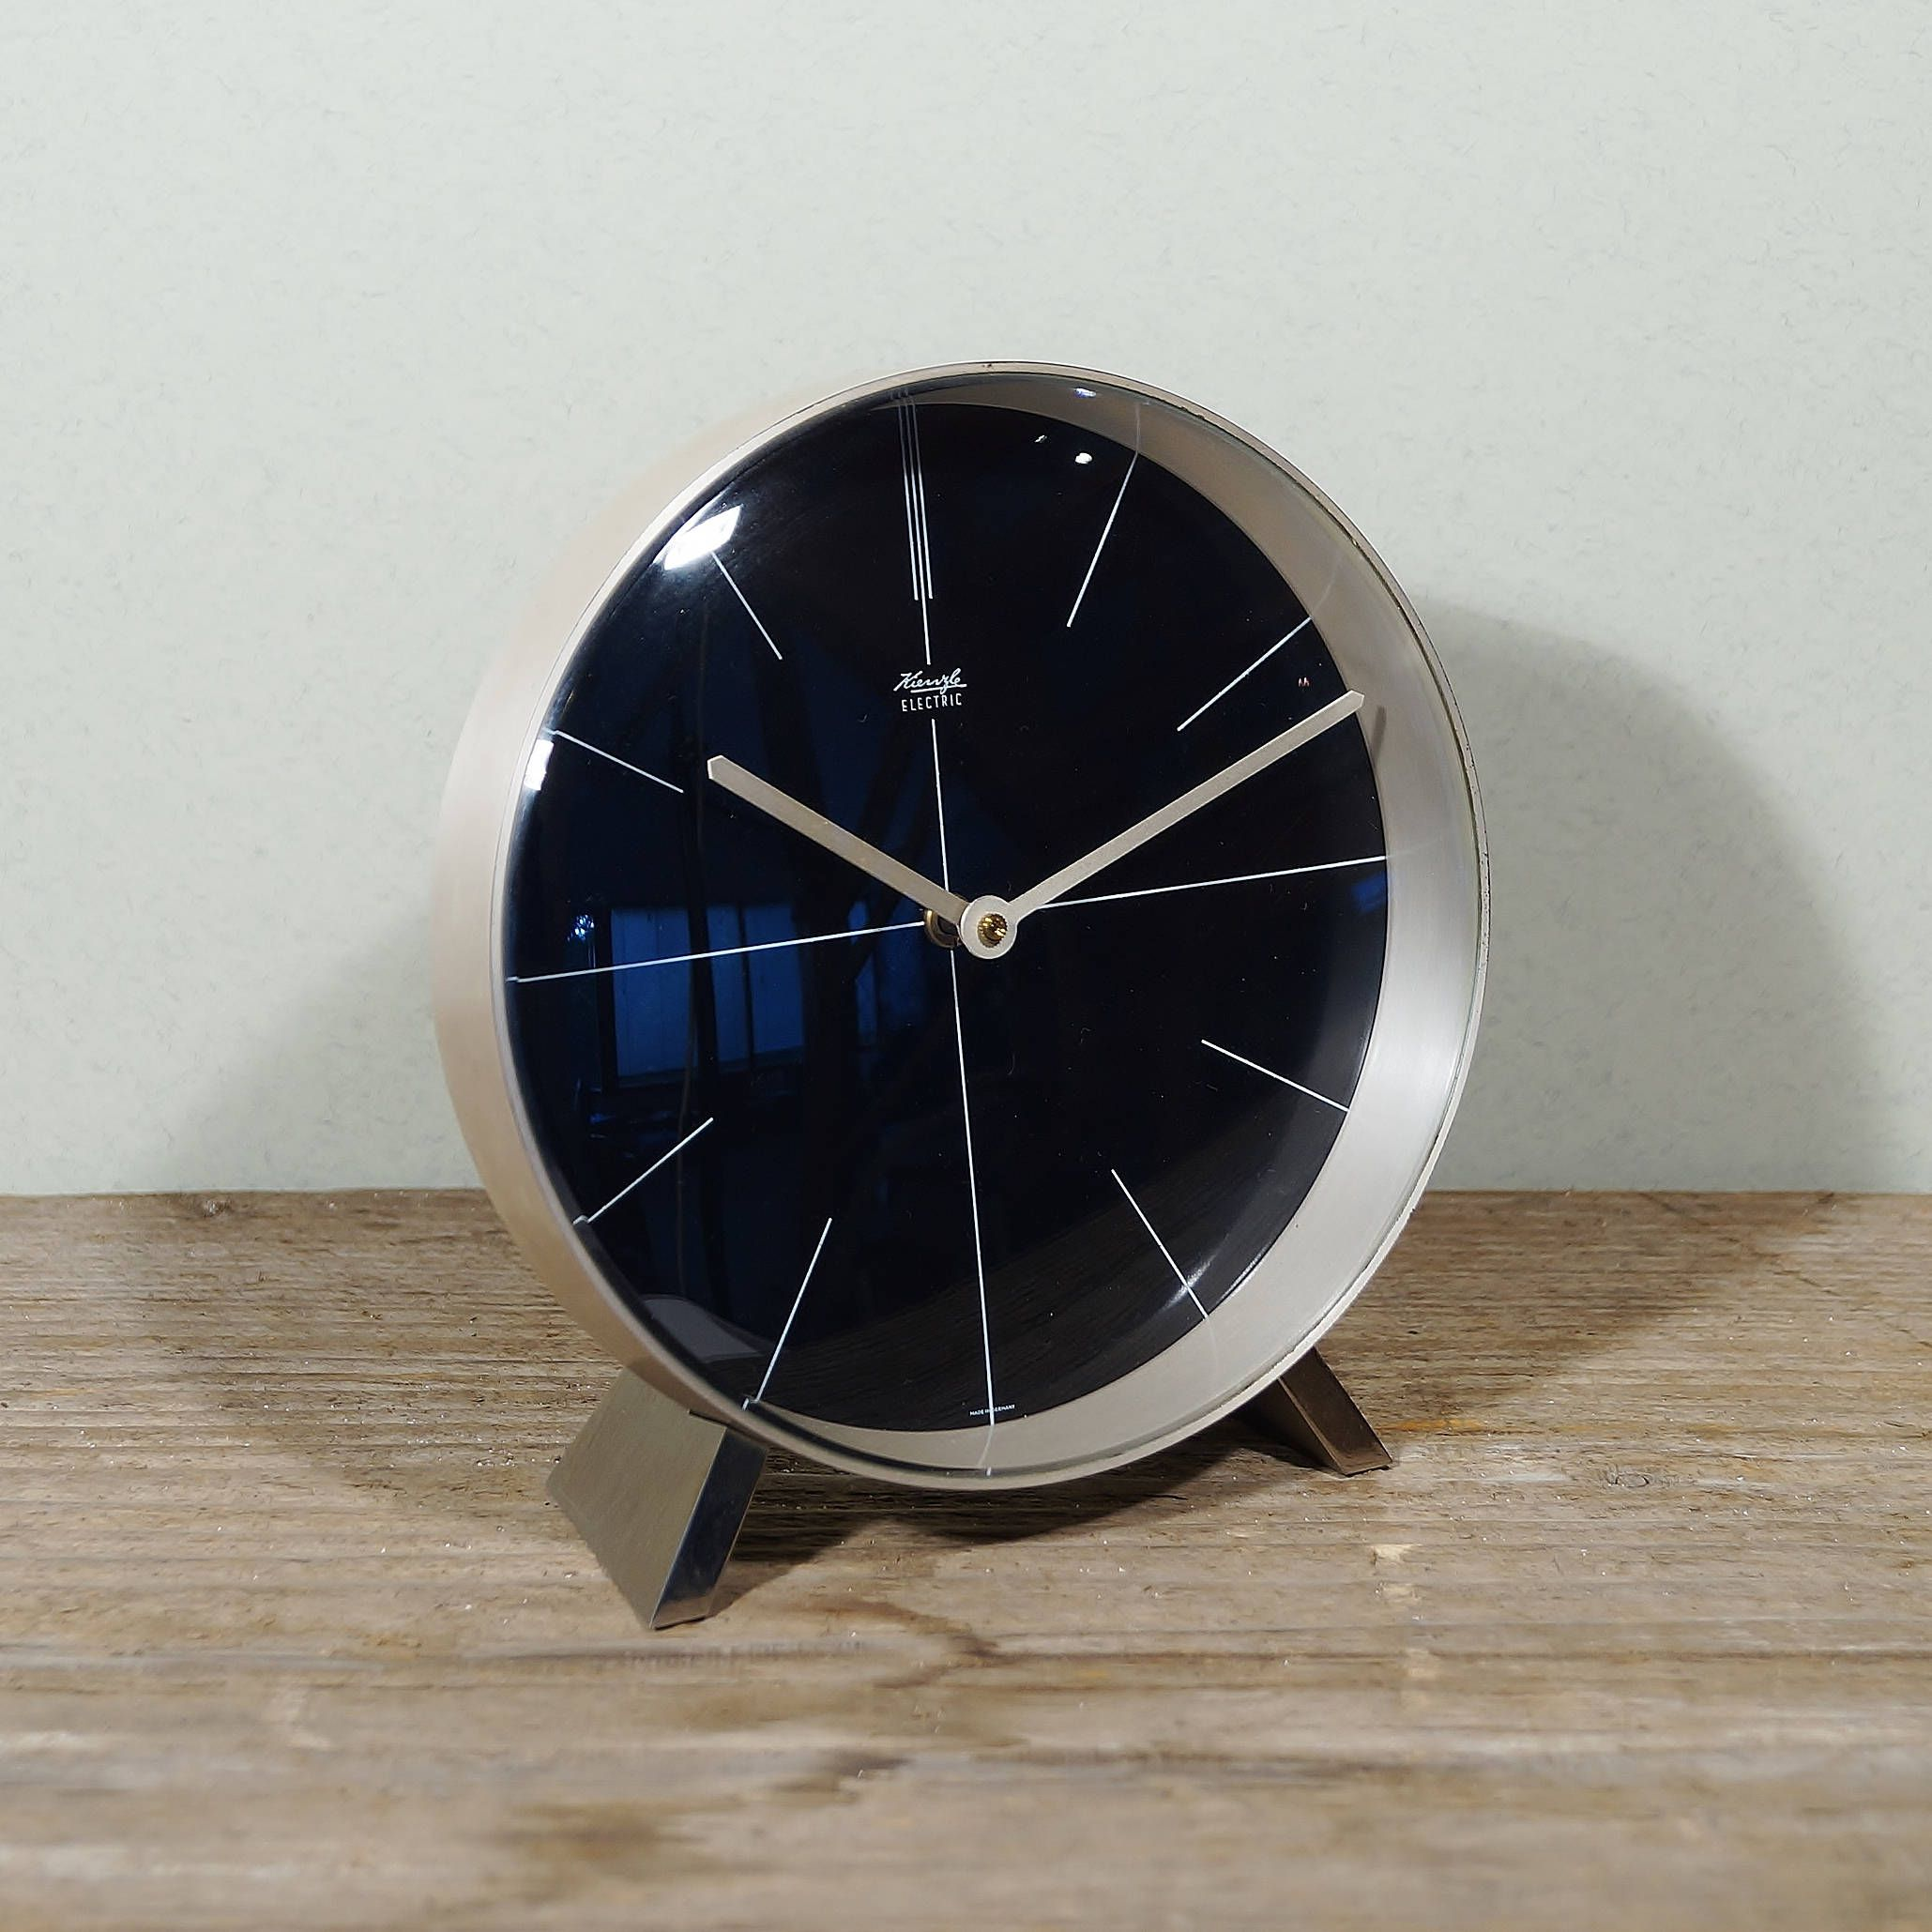 Electric table clock of KIENZLE Stainless steel and glass Germany 60 Vintage mid century clock Minimalistic design Retro Europe interior decoration